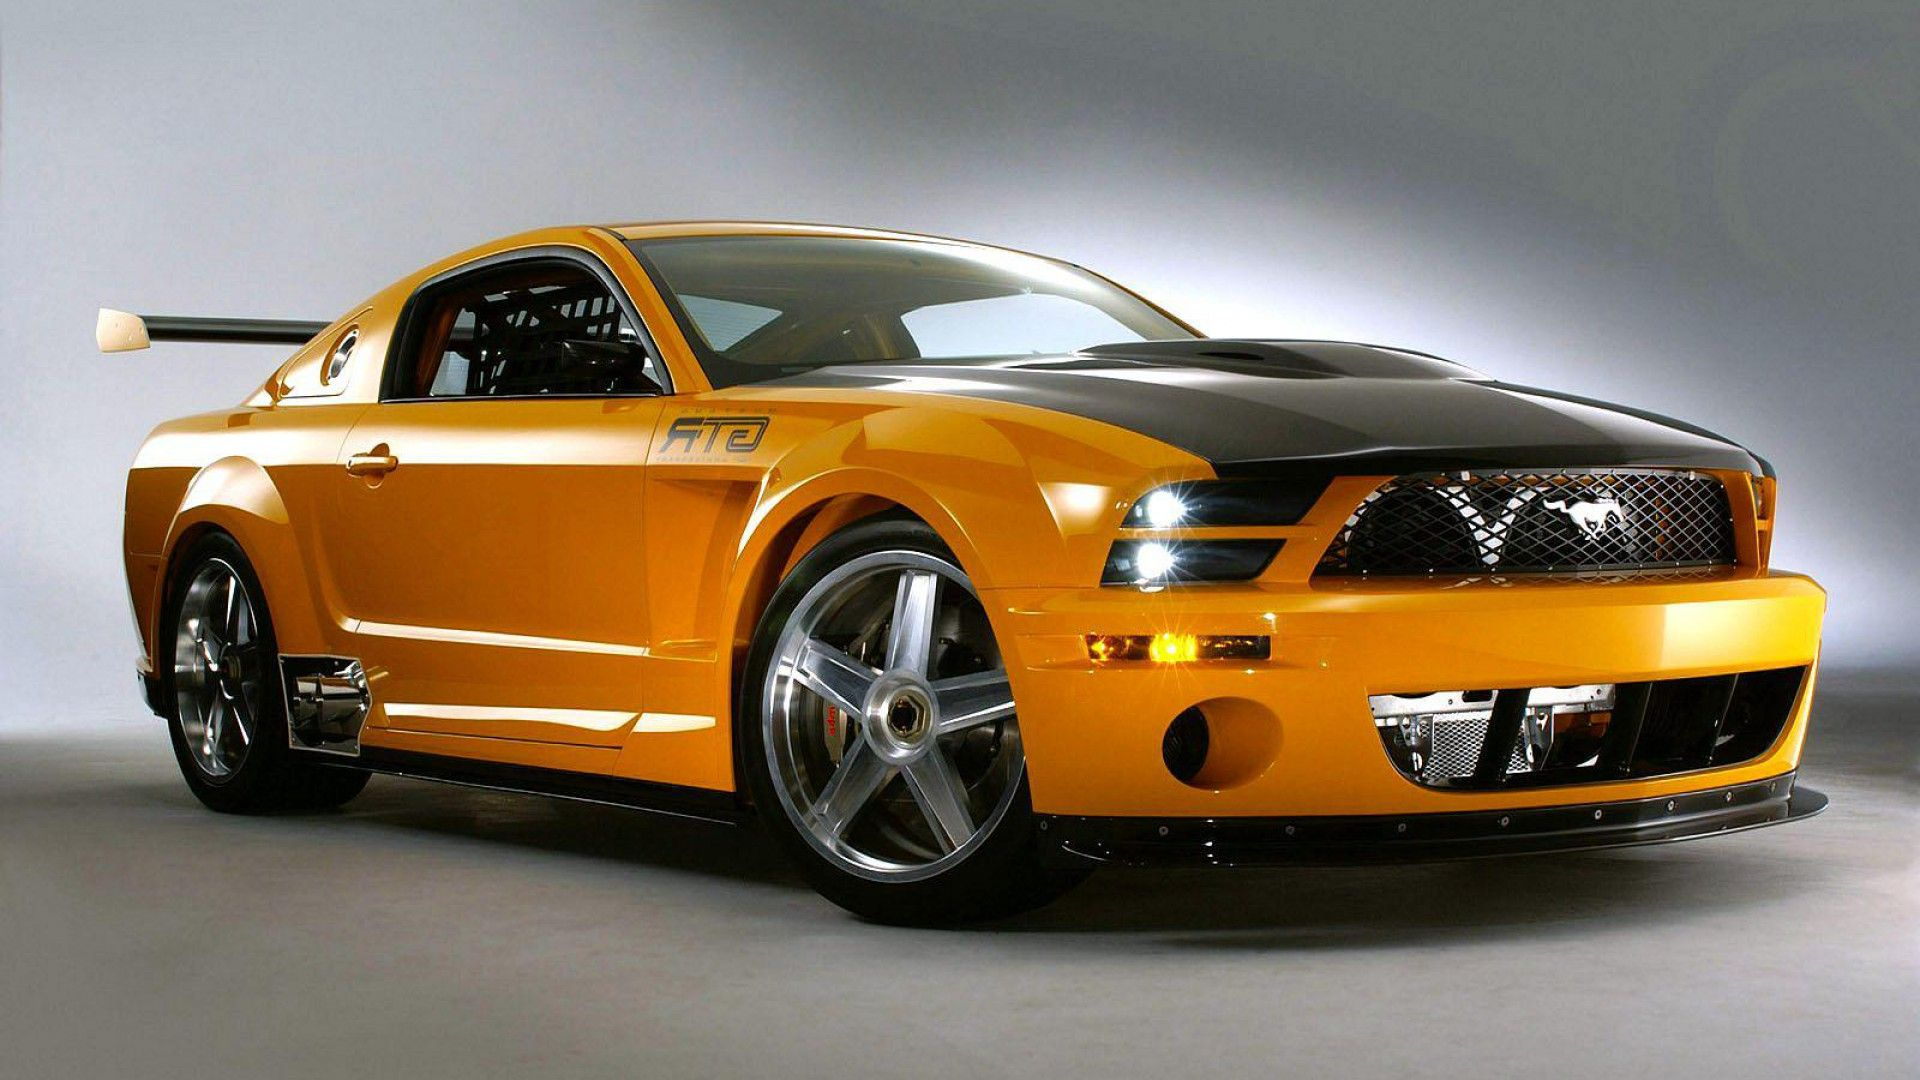 2012 Ford Mustang GT Picture Wallpaper is hd wallpaper for